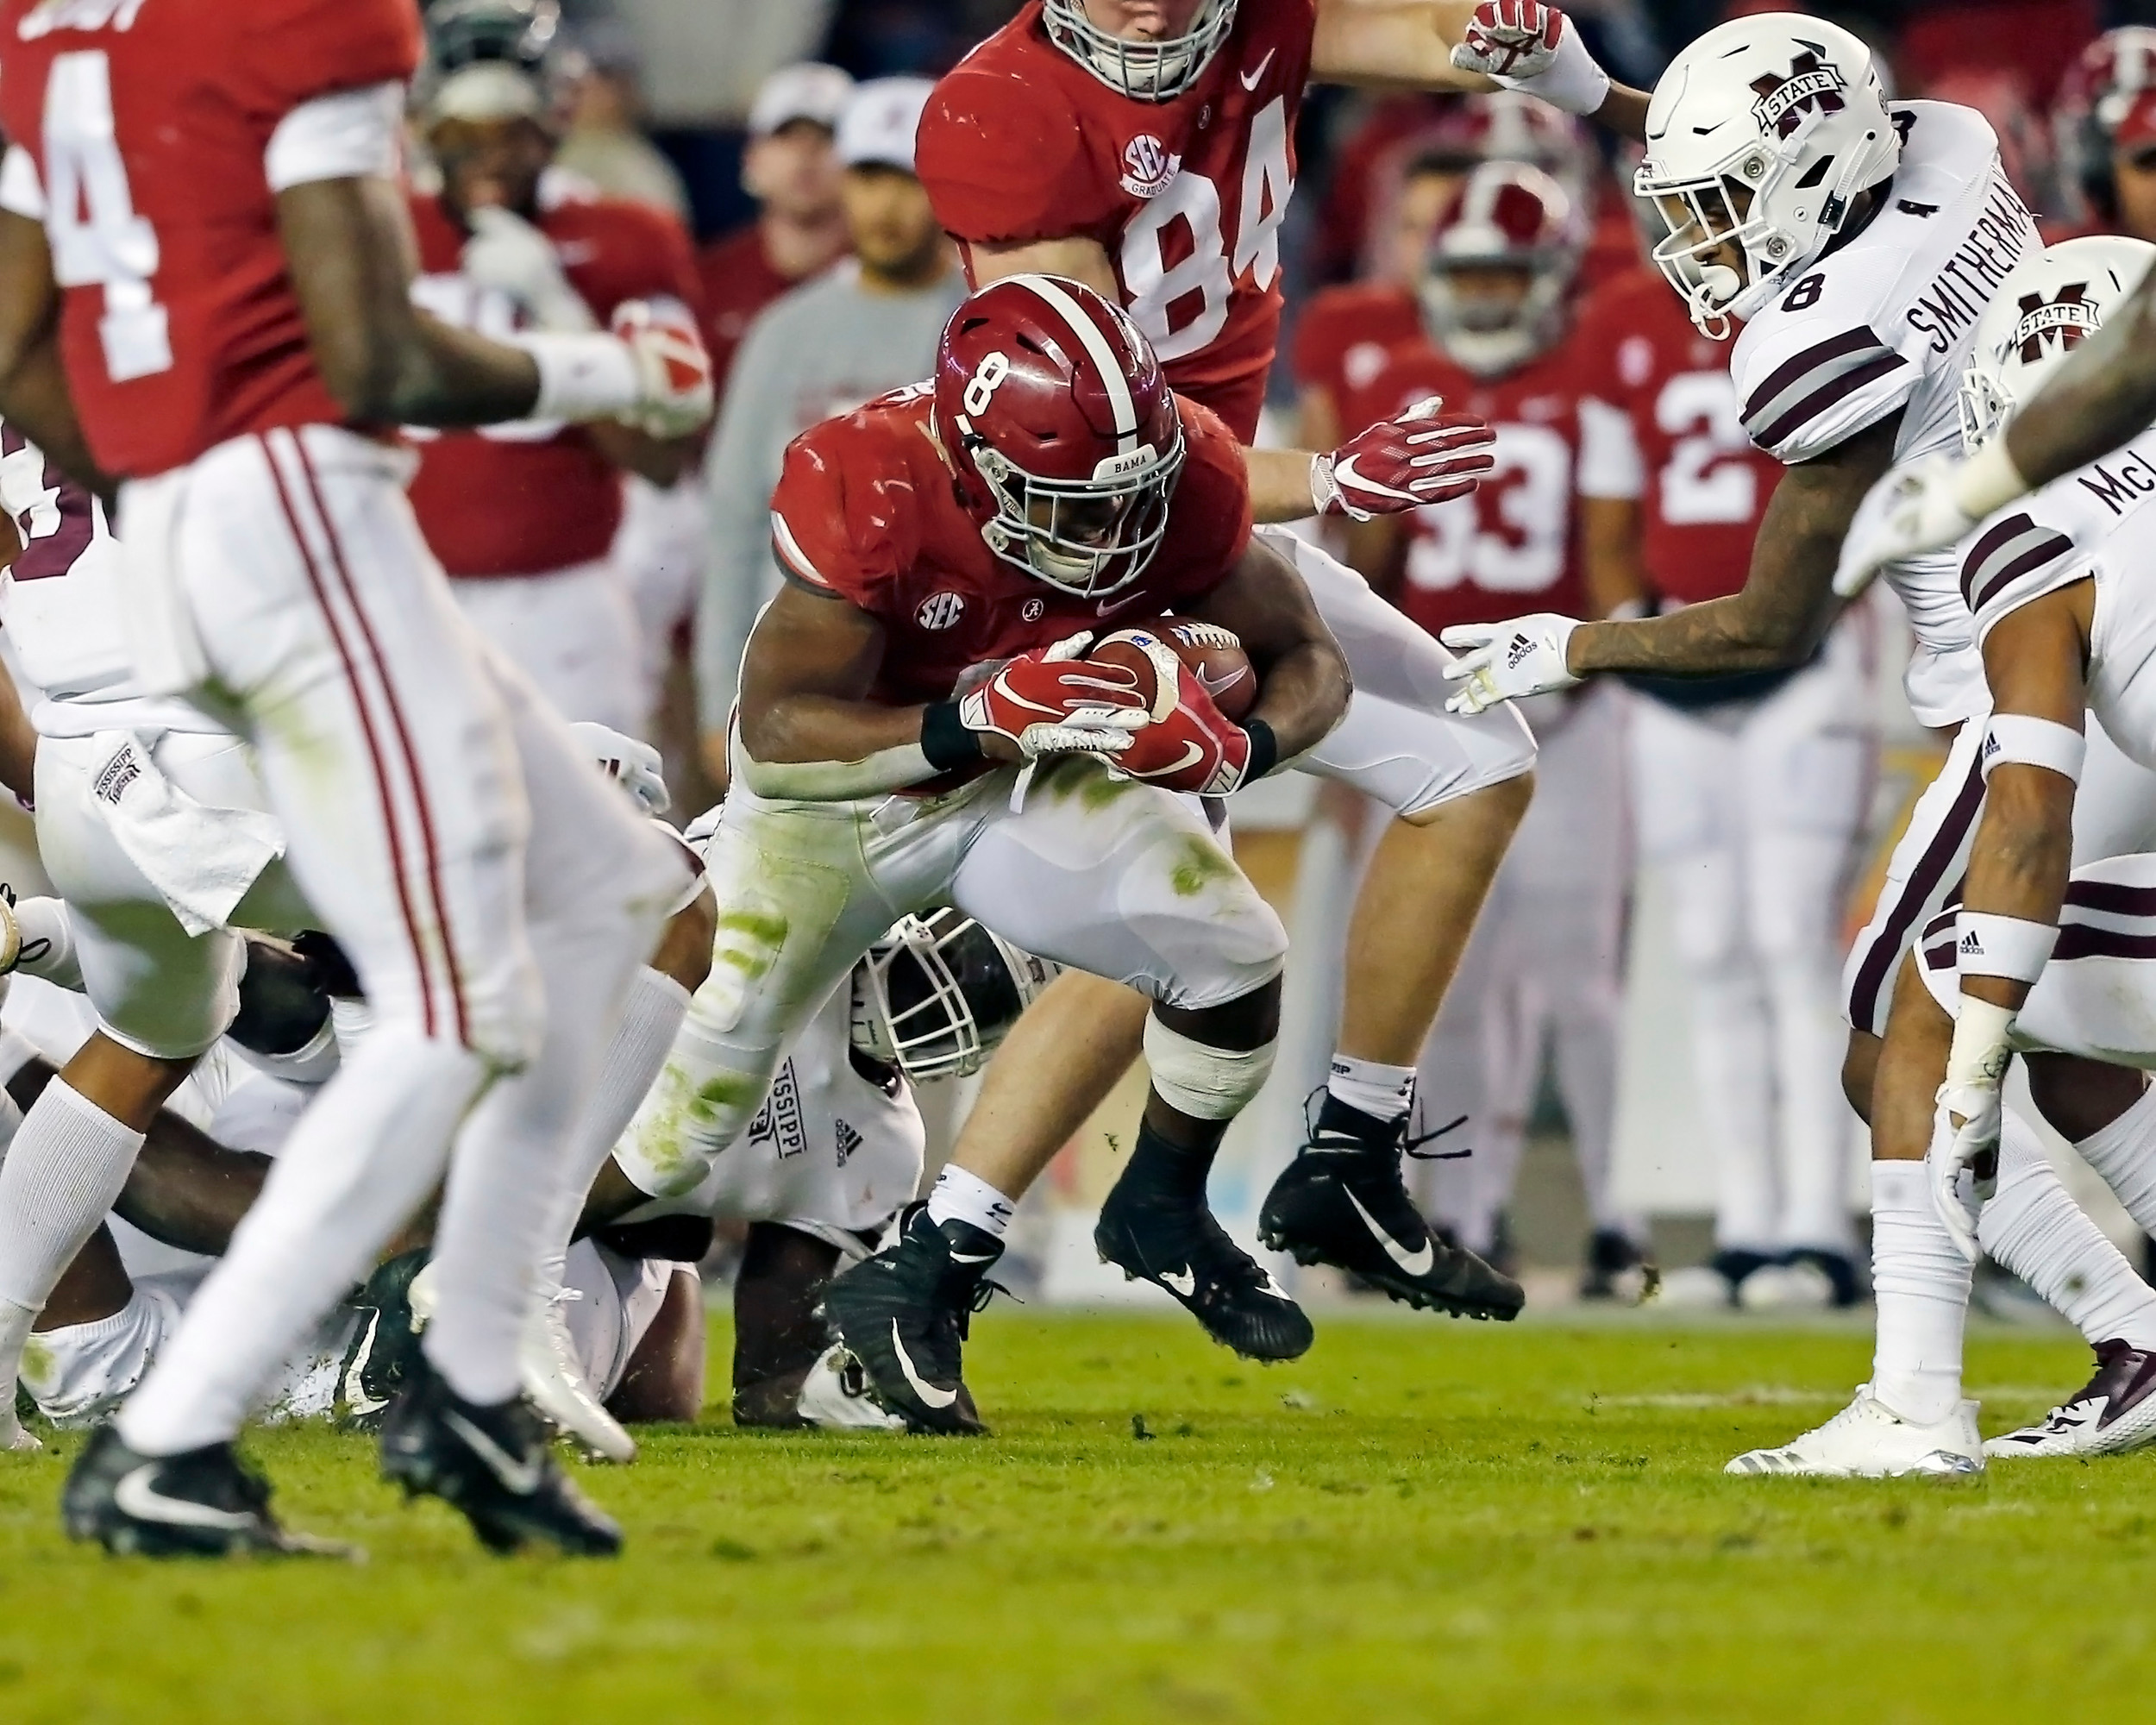 Alabama Crimson Tide running back Josh Jacobs (8) works hard for yardage during the second half of the game between Mississippi State and the University of Alabama at Bryant-Denny Stadium in Tuscaloosa, Al. Credit: Jason Clark / Daily Mountain Eagle